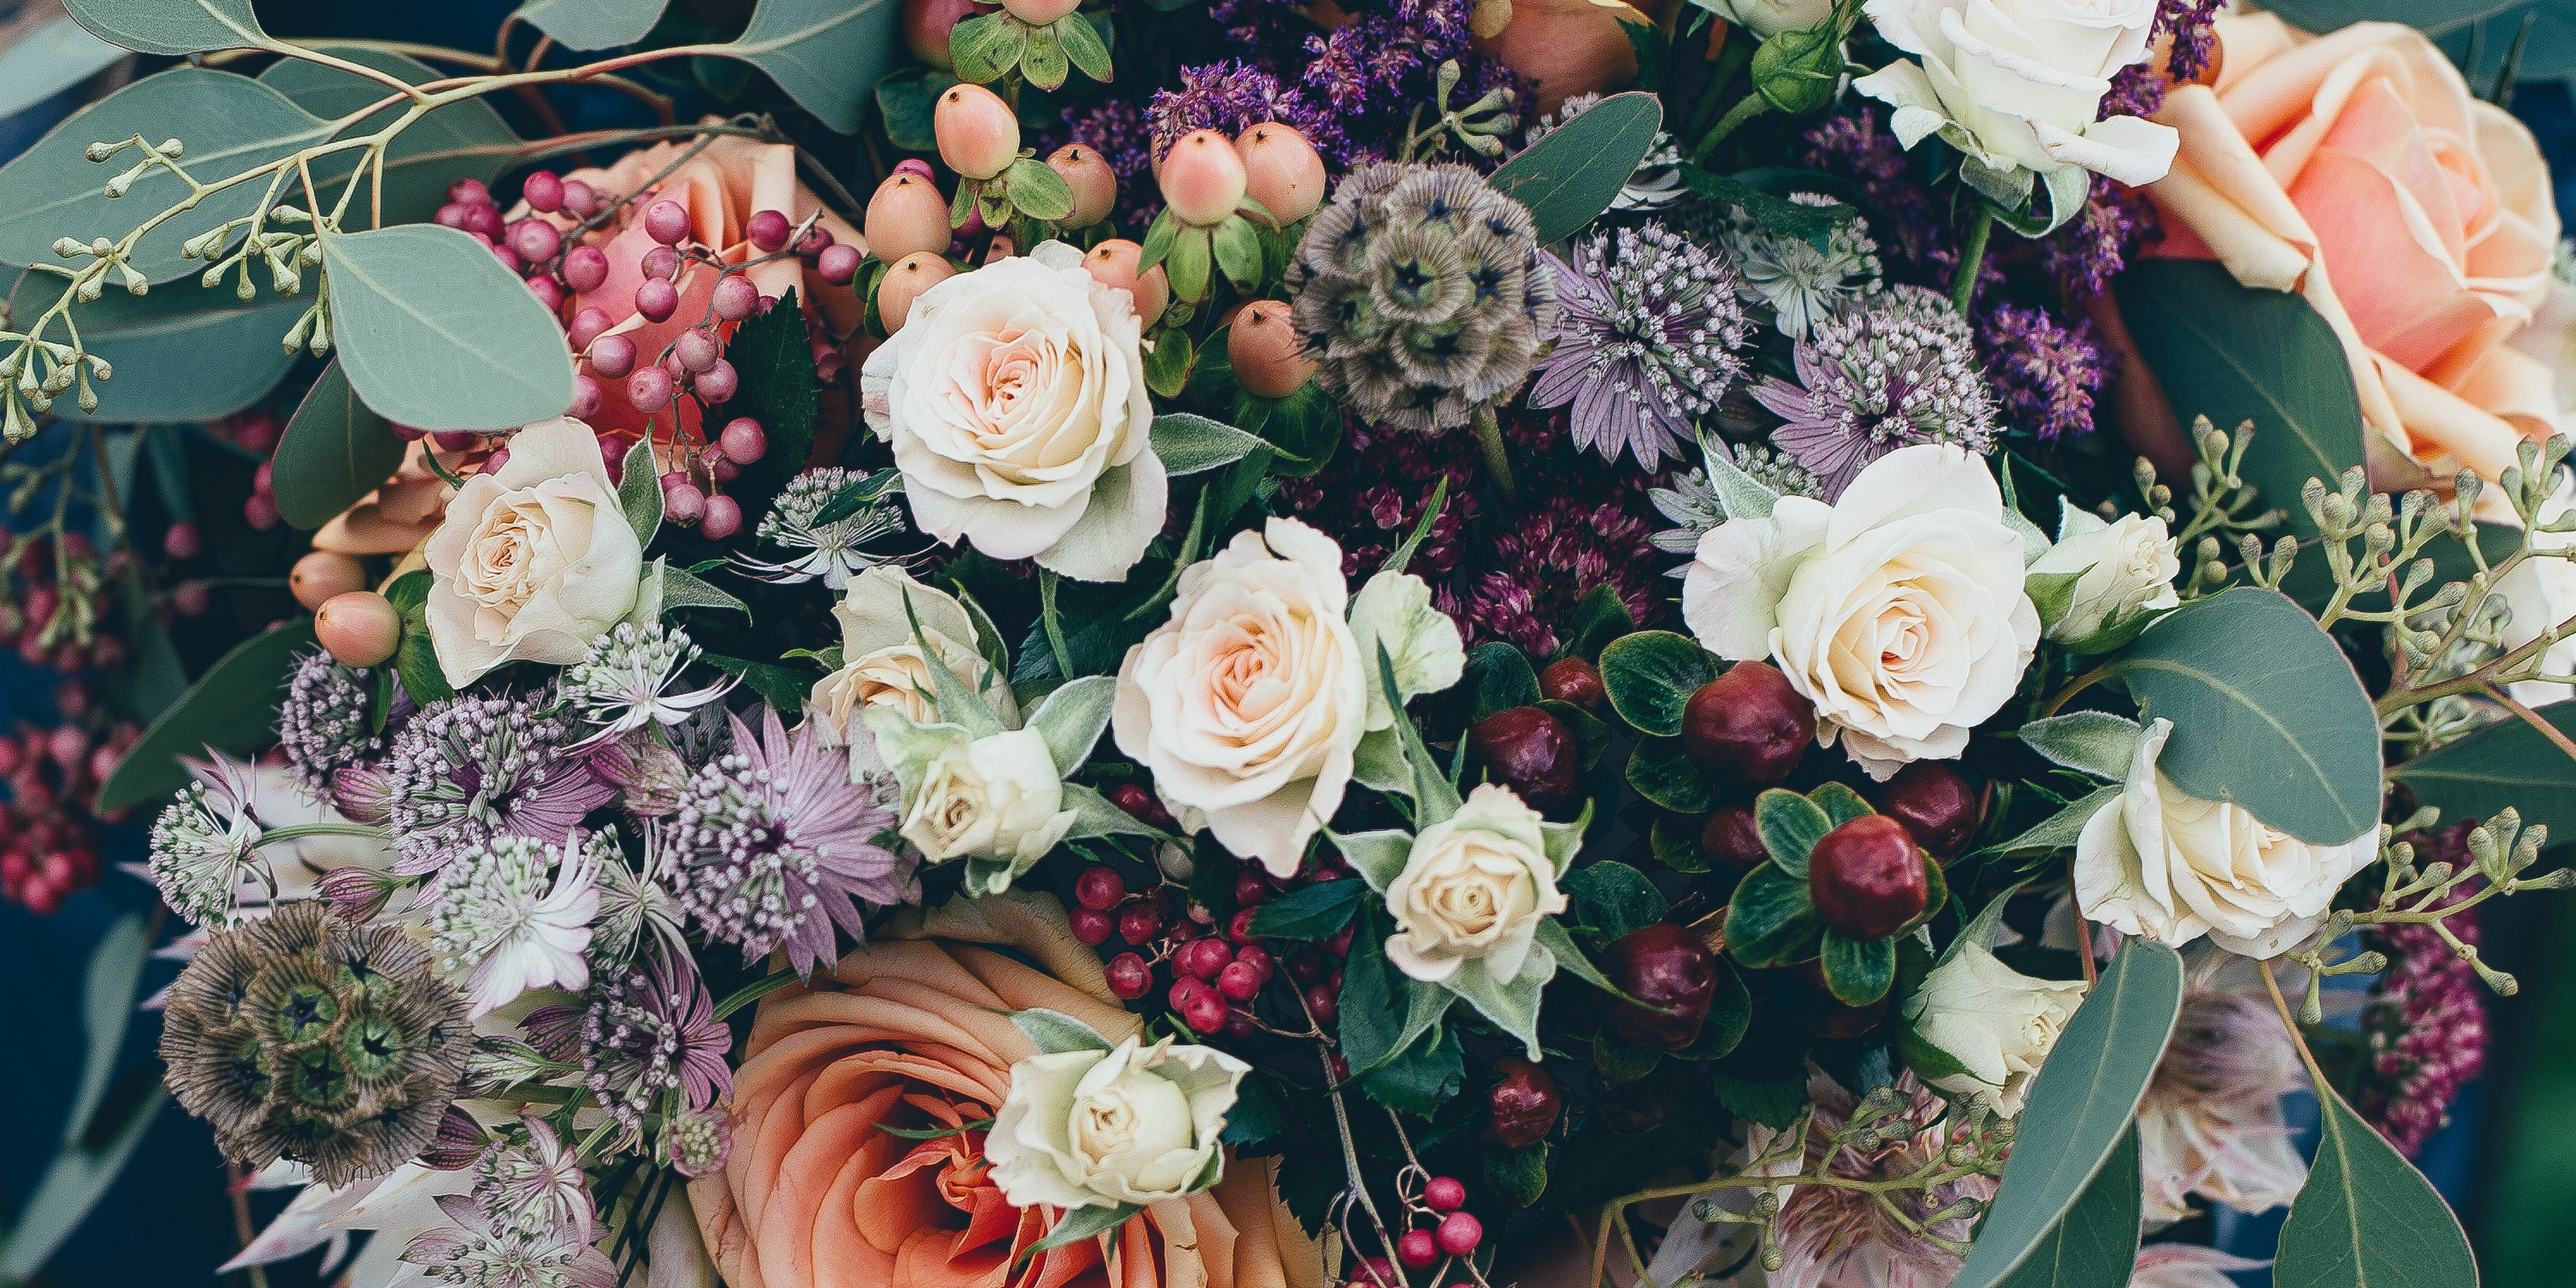 The Meaning Behind Funeral Flower Arrangements